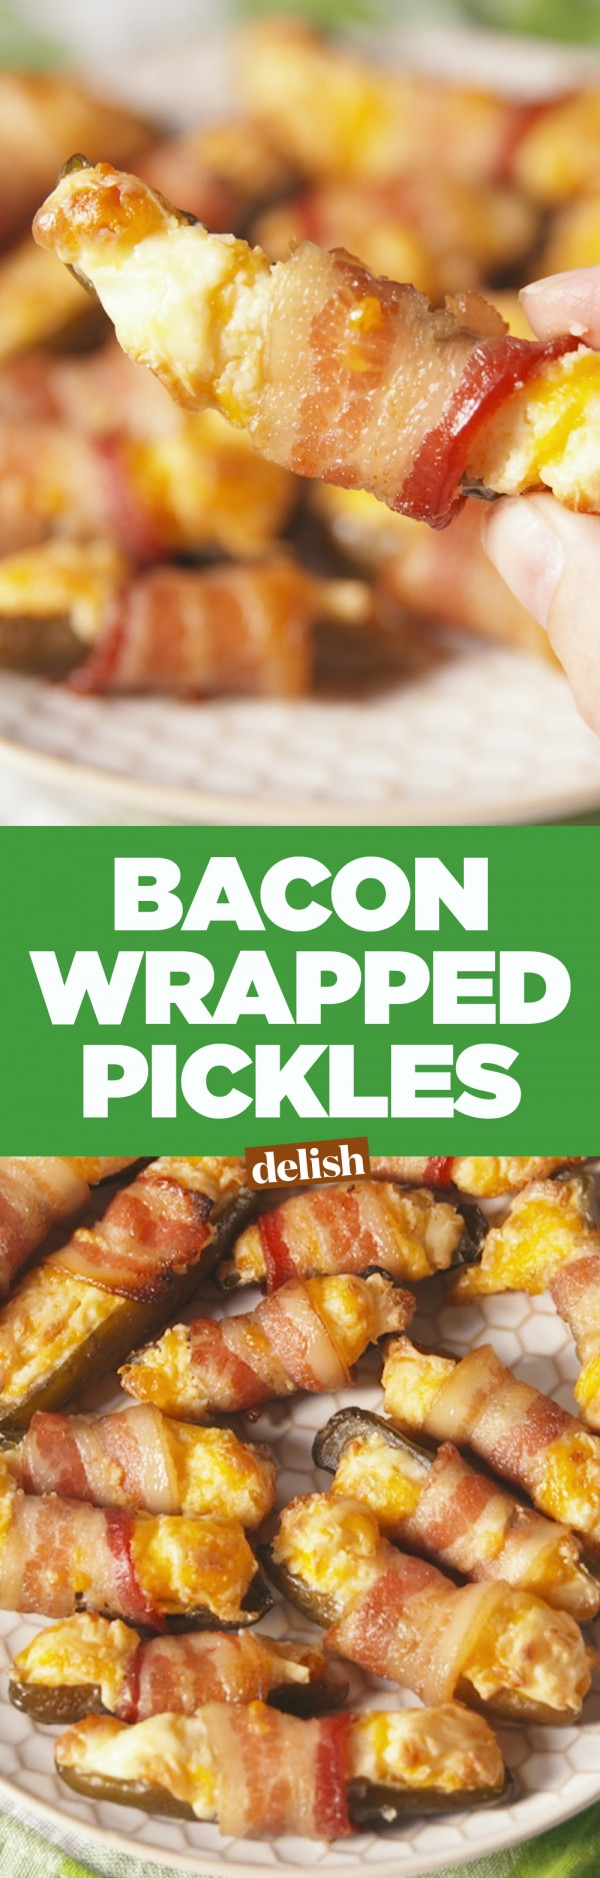 Get the recipe Bacon Wrapped Pickles @recipes_to_go